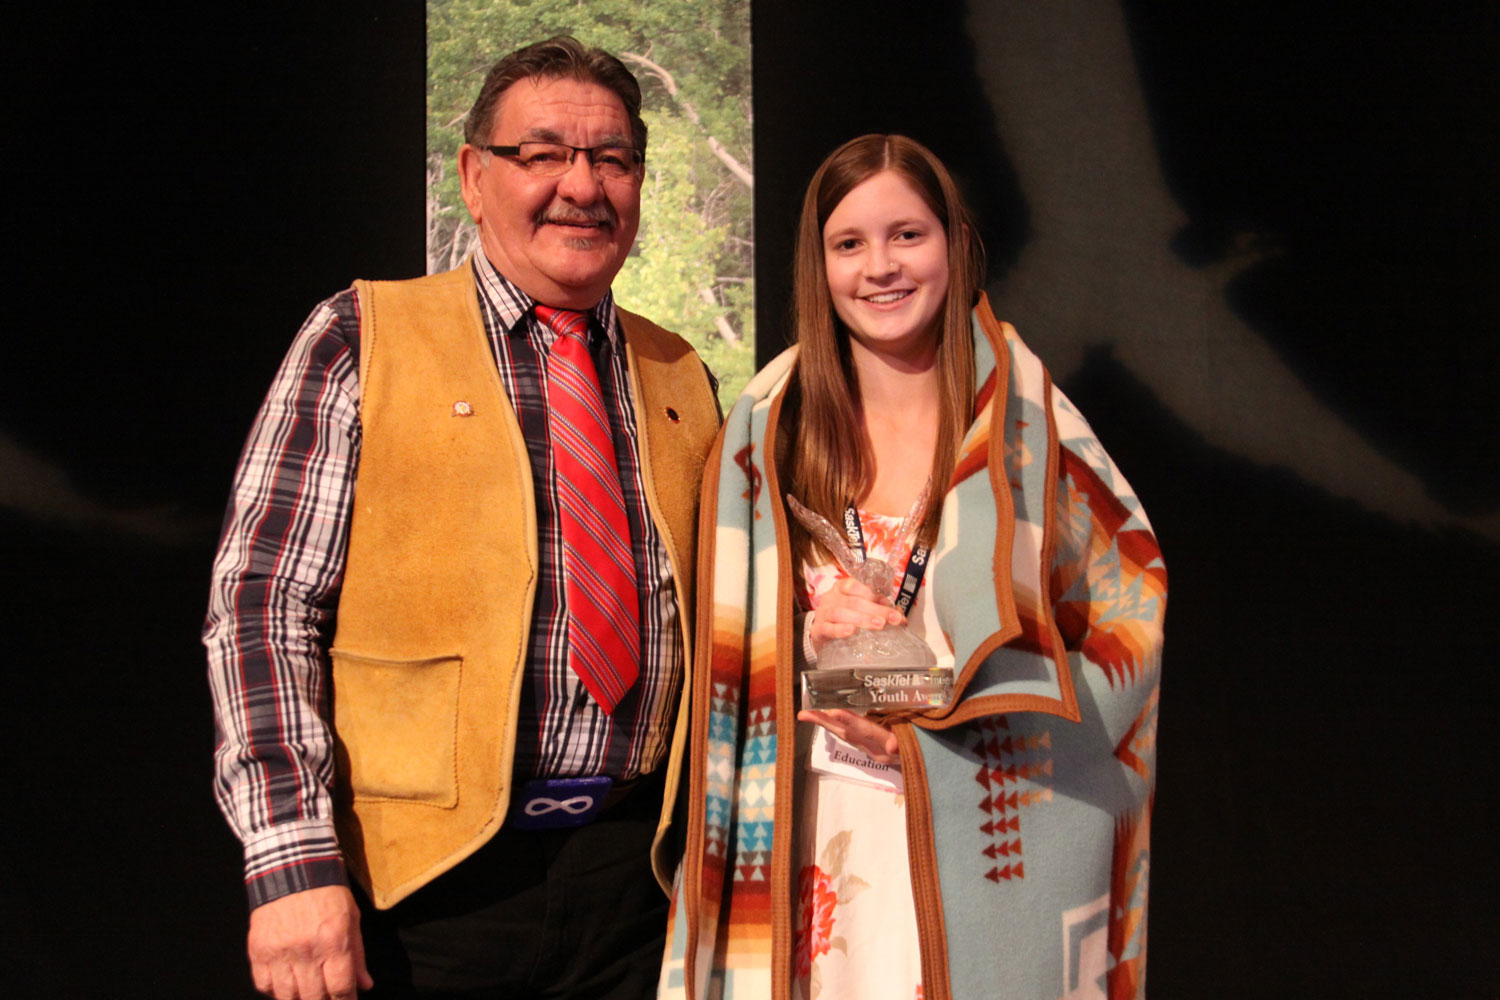 Norman Fleury of the U of S presented the Education award to Chelsea Cooke